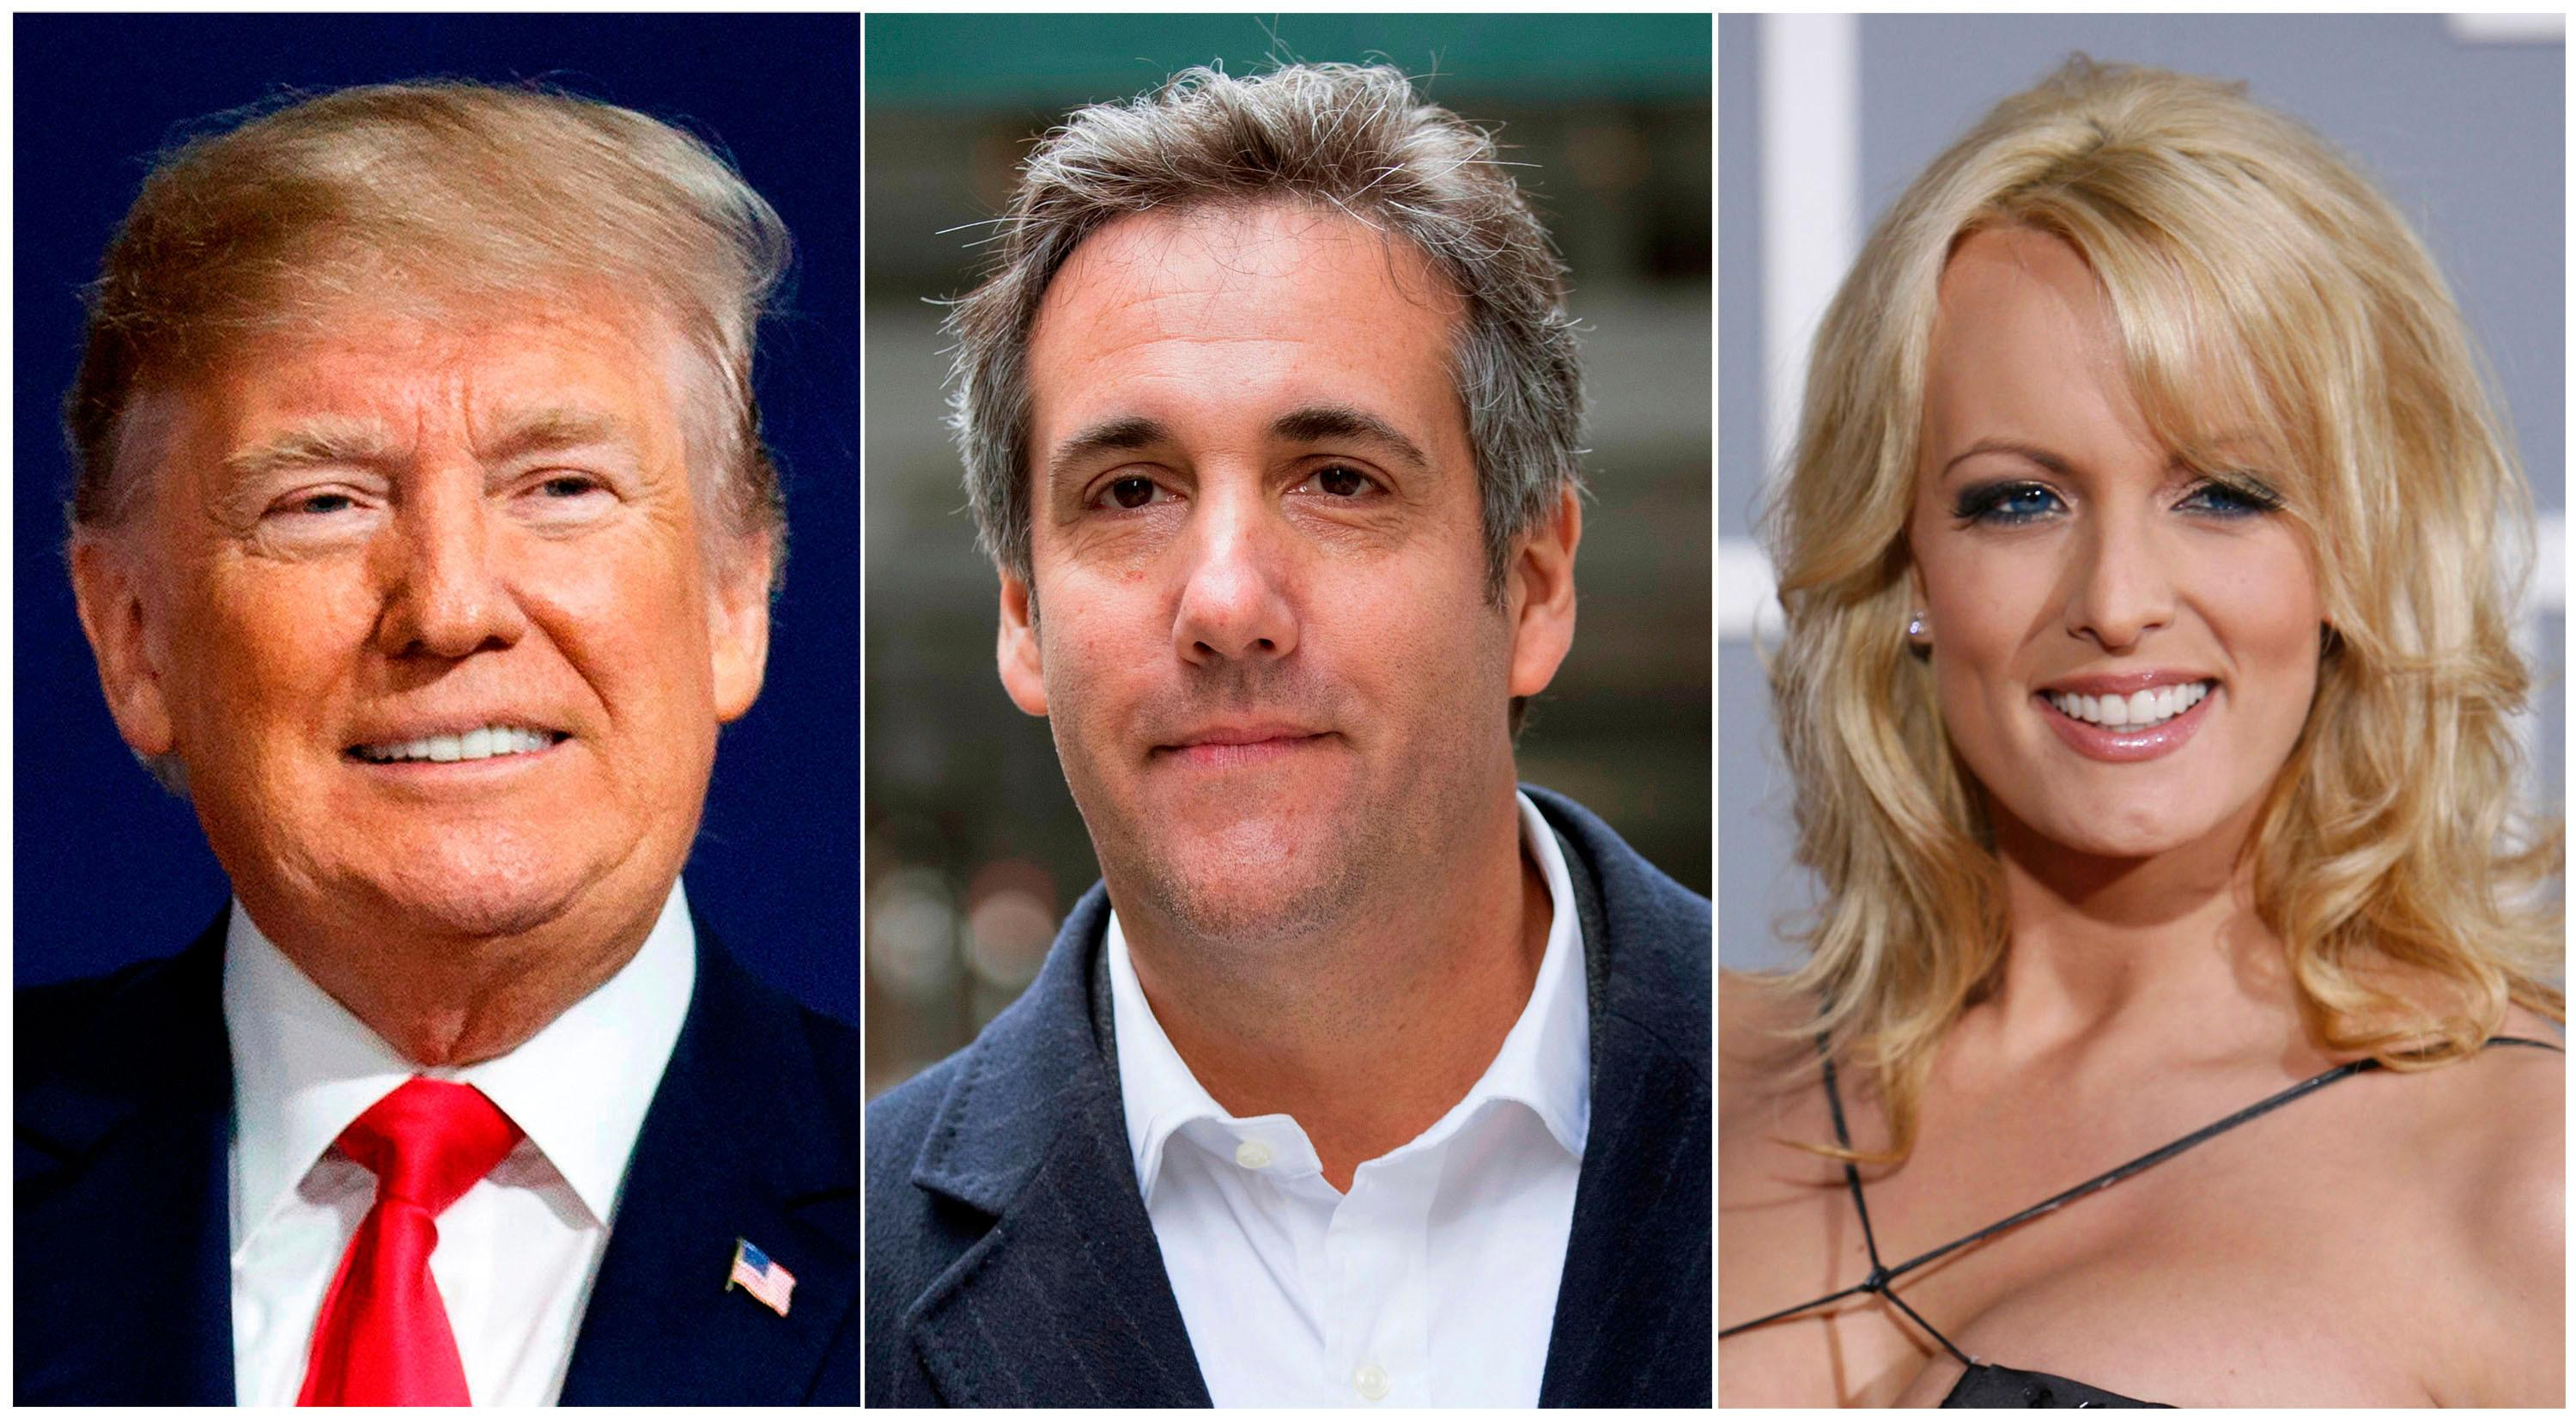 FILE - This combination of file photo shows, from left, President Donald Trump, attorney Michael Cohen and adult film actress Stormy Daniels. (AP Photo/File)